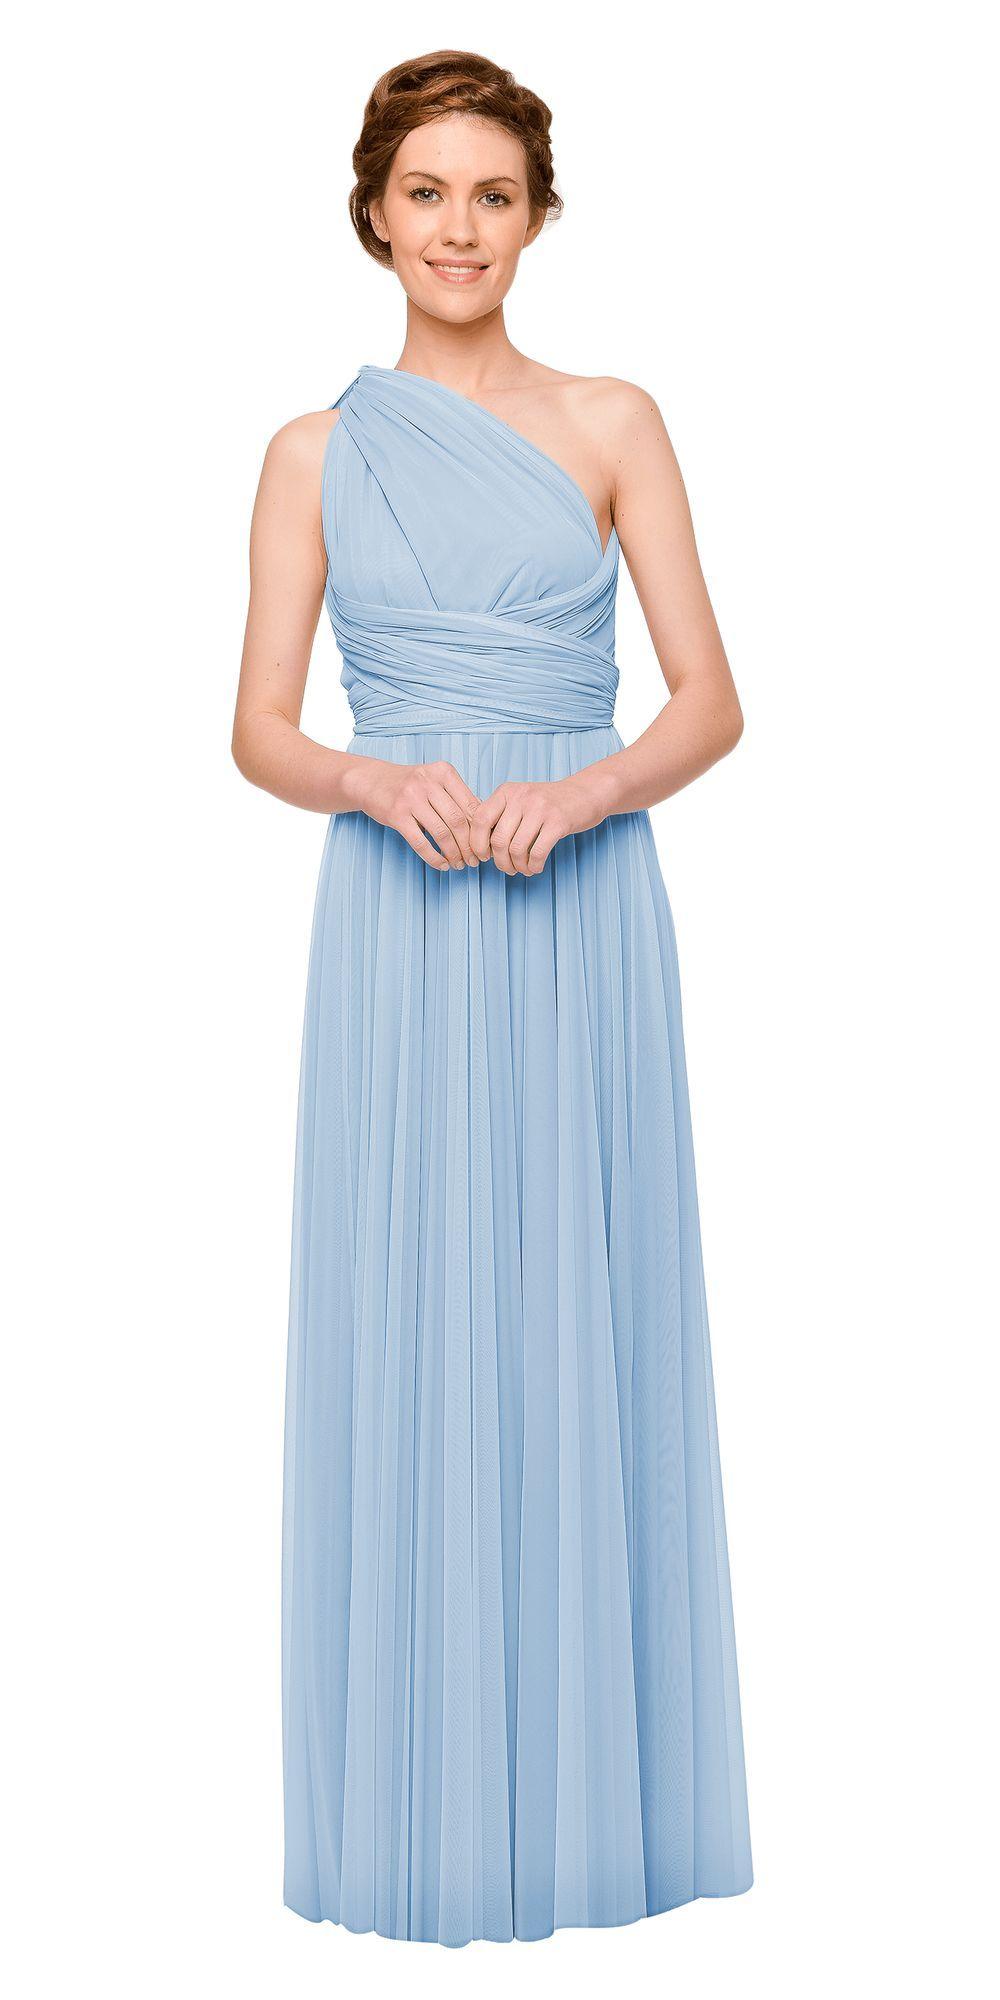 Gorgeous Powder Blue One Shoulder Bridesmaid Dress A Twobirds Multiway Convertible Twist Wrap